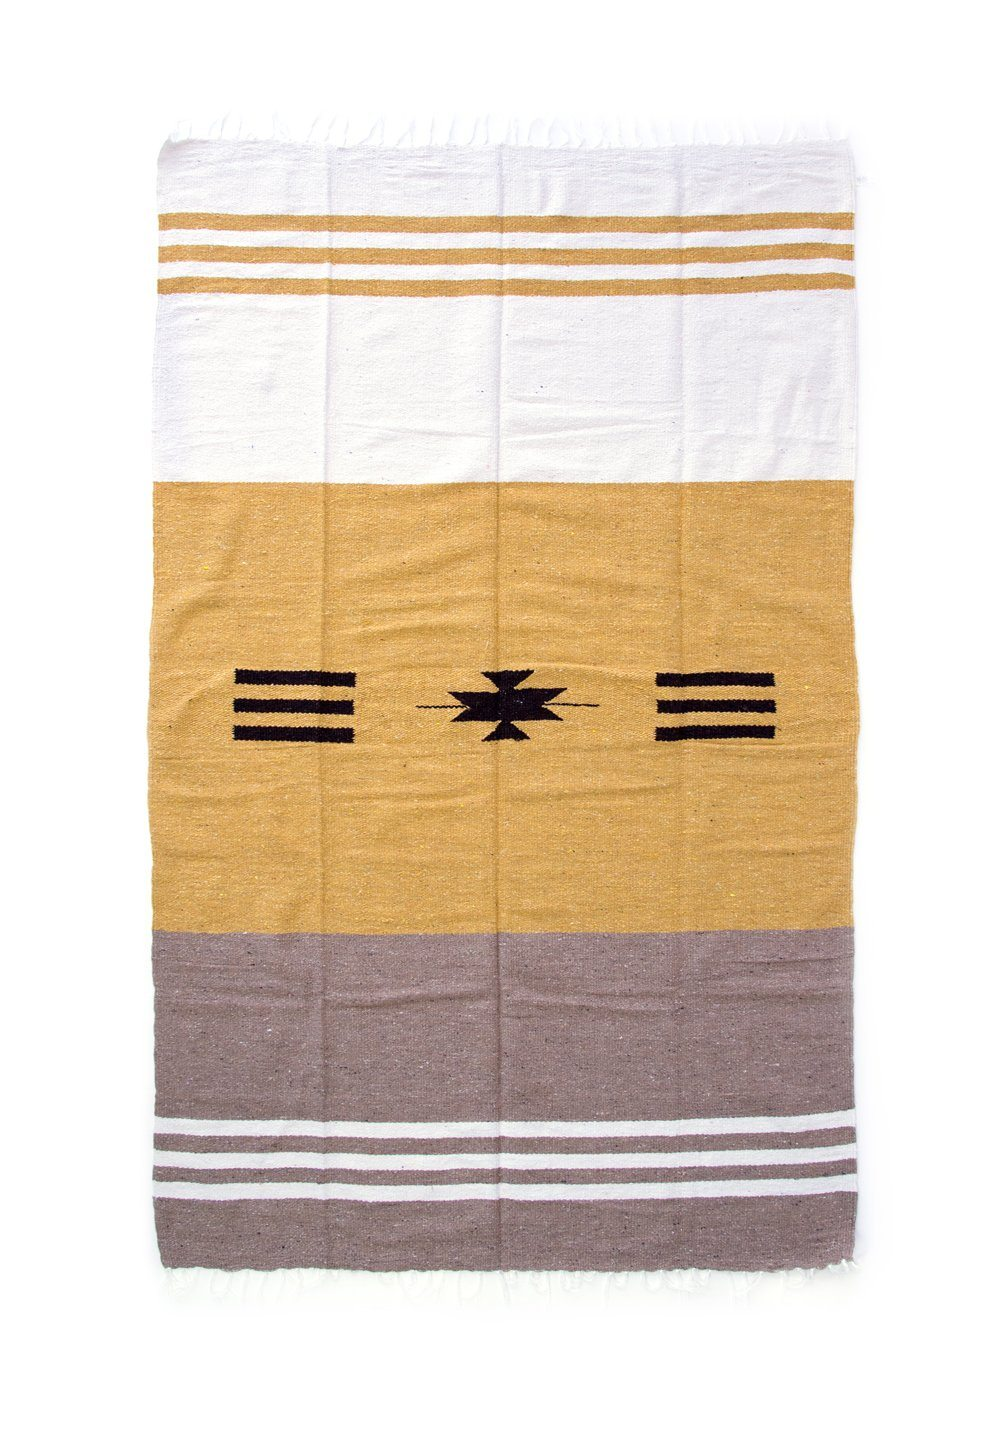 Nipomo Horizonte Collection - Arena Blanket Nipomo